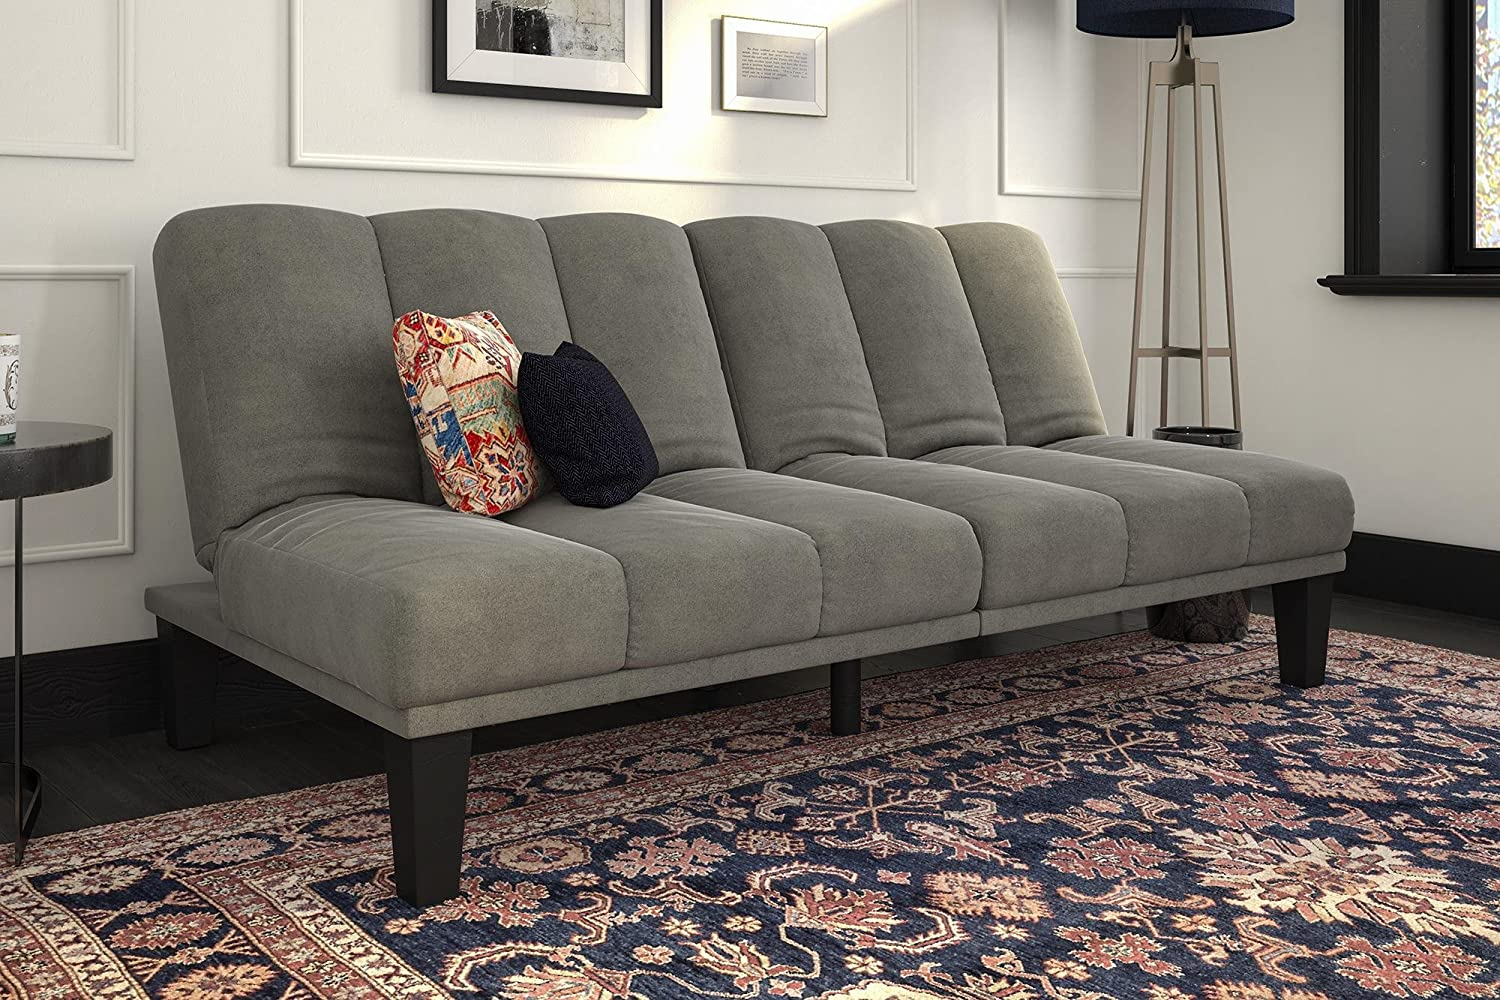 DHP Hamilton Estate Premium Futon Sofa Sleeper, Comfortable Plush Microfiber Upholstery, Rich Grey